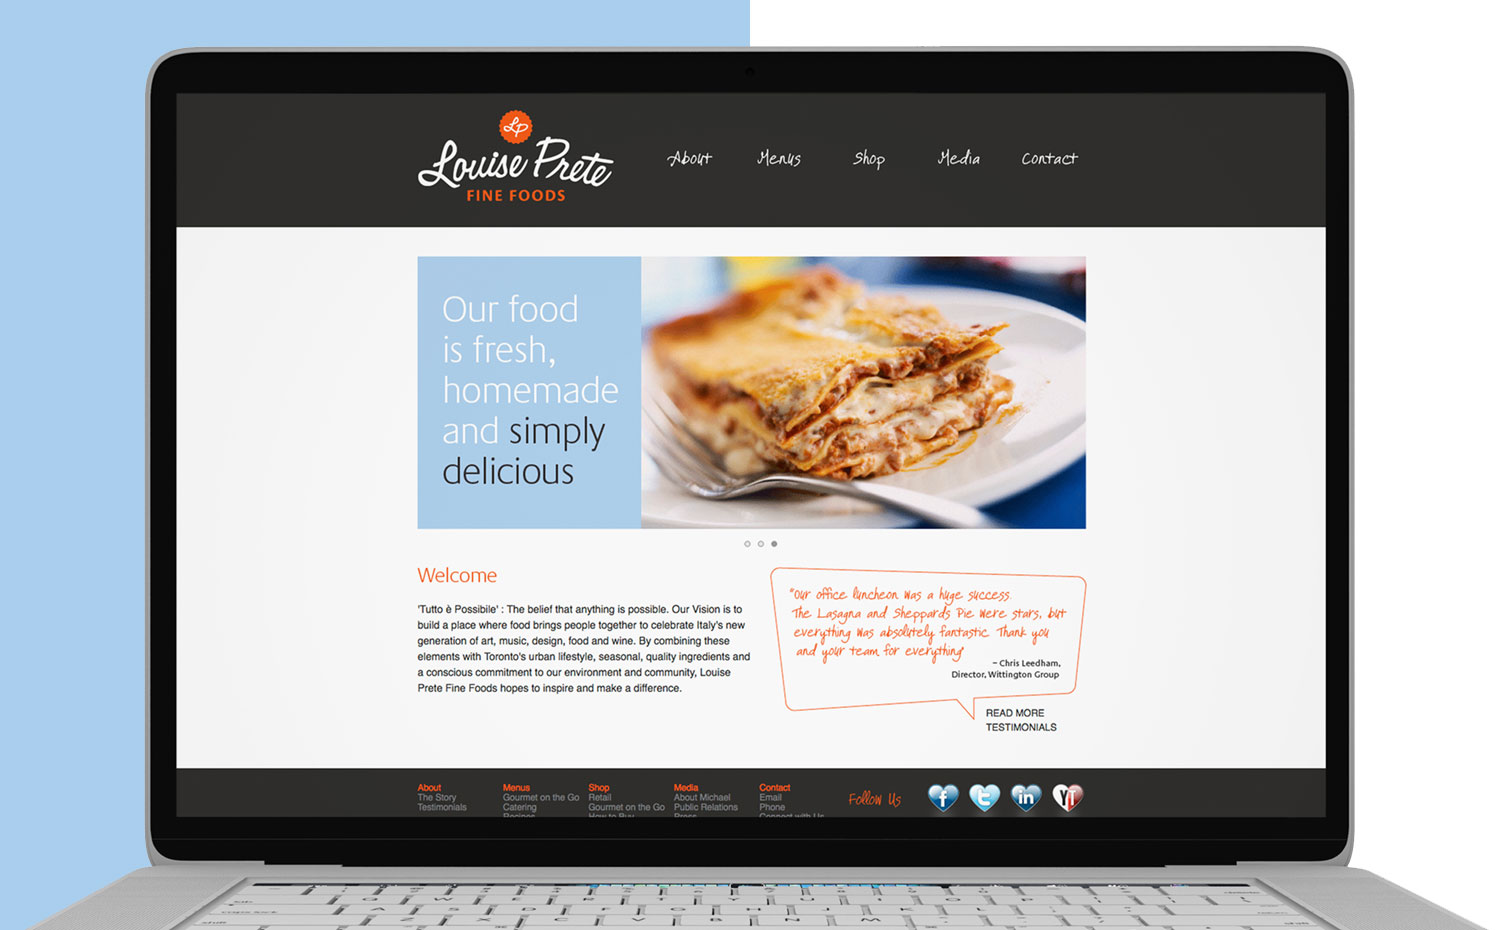 Louise Prete Fine Foods website on laptop